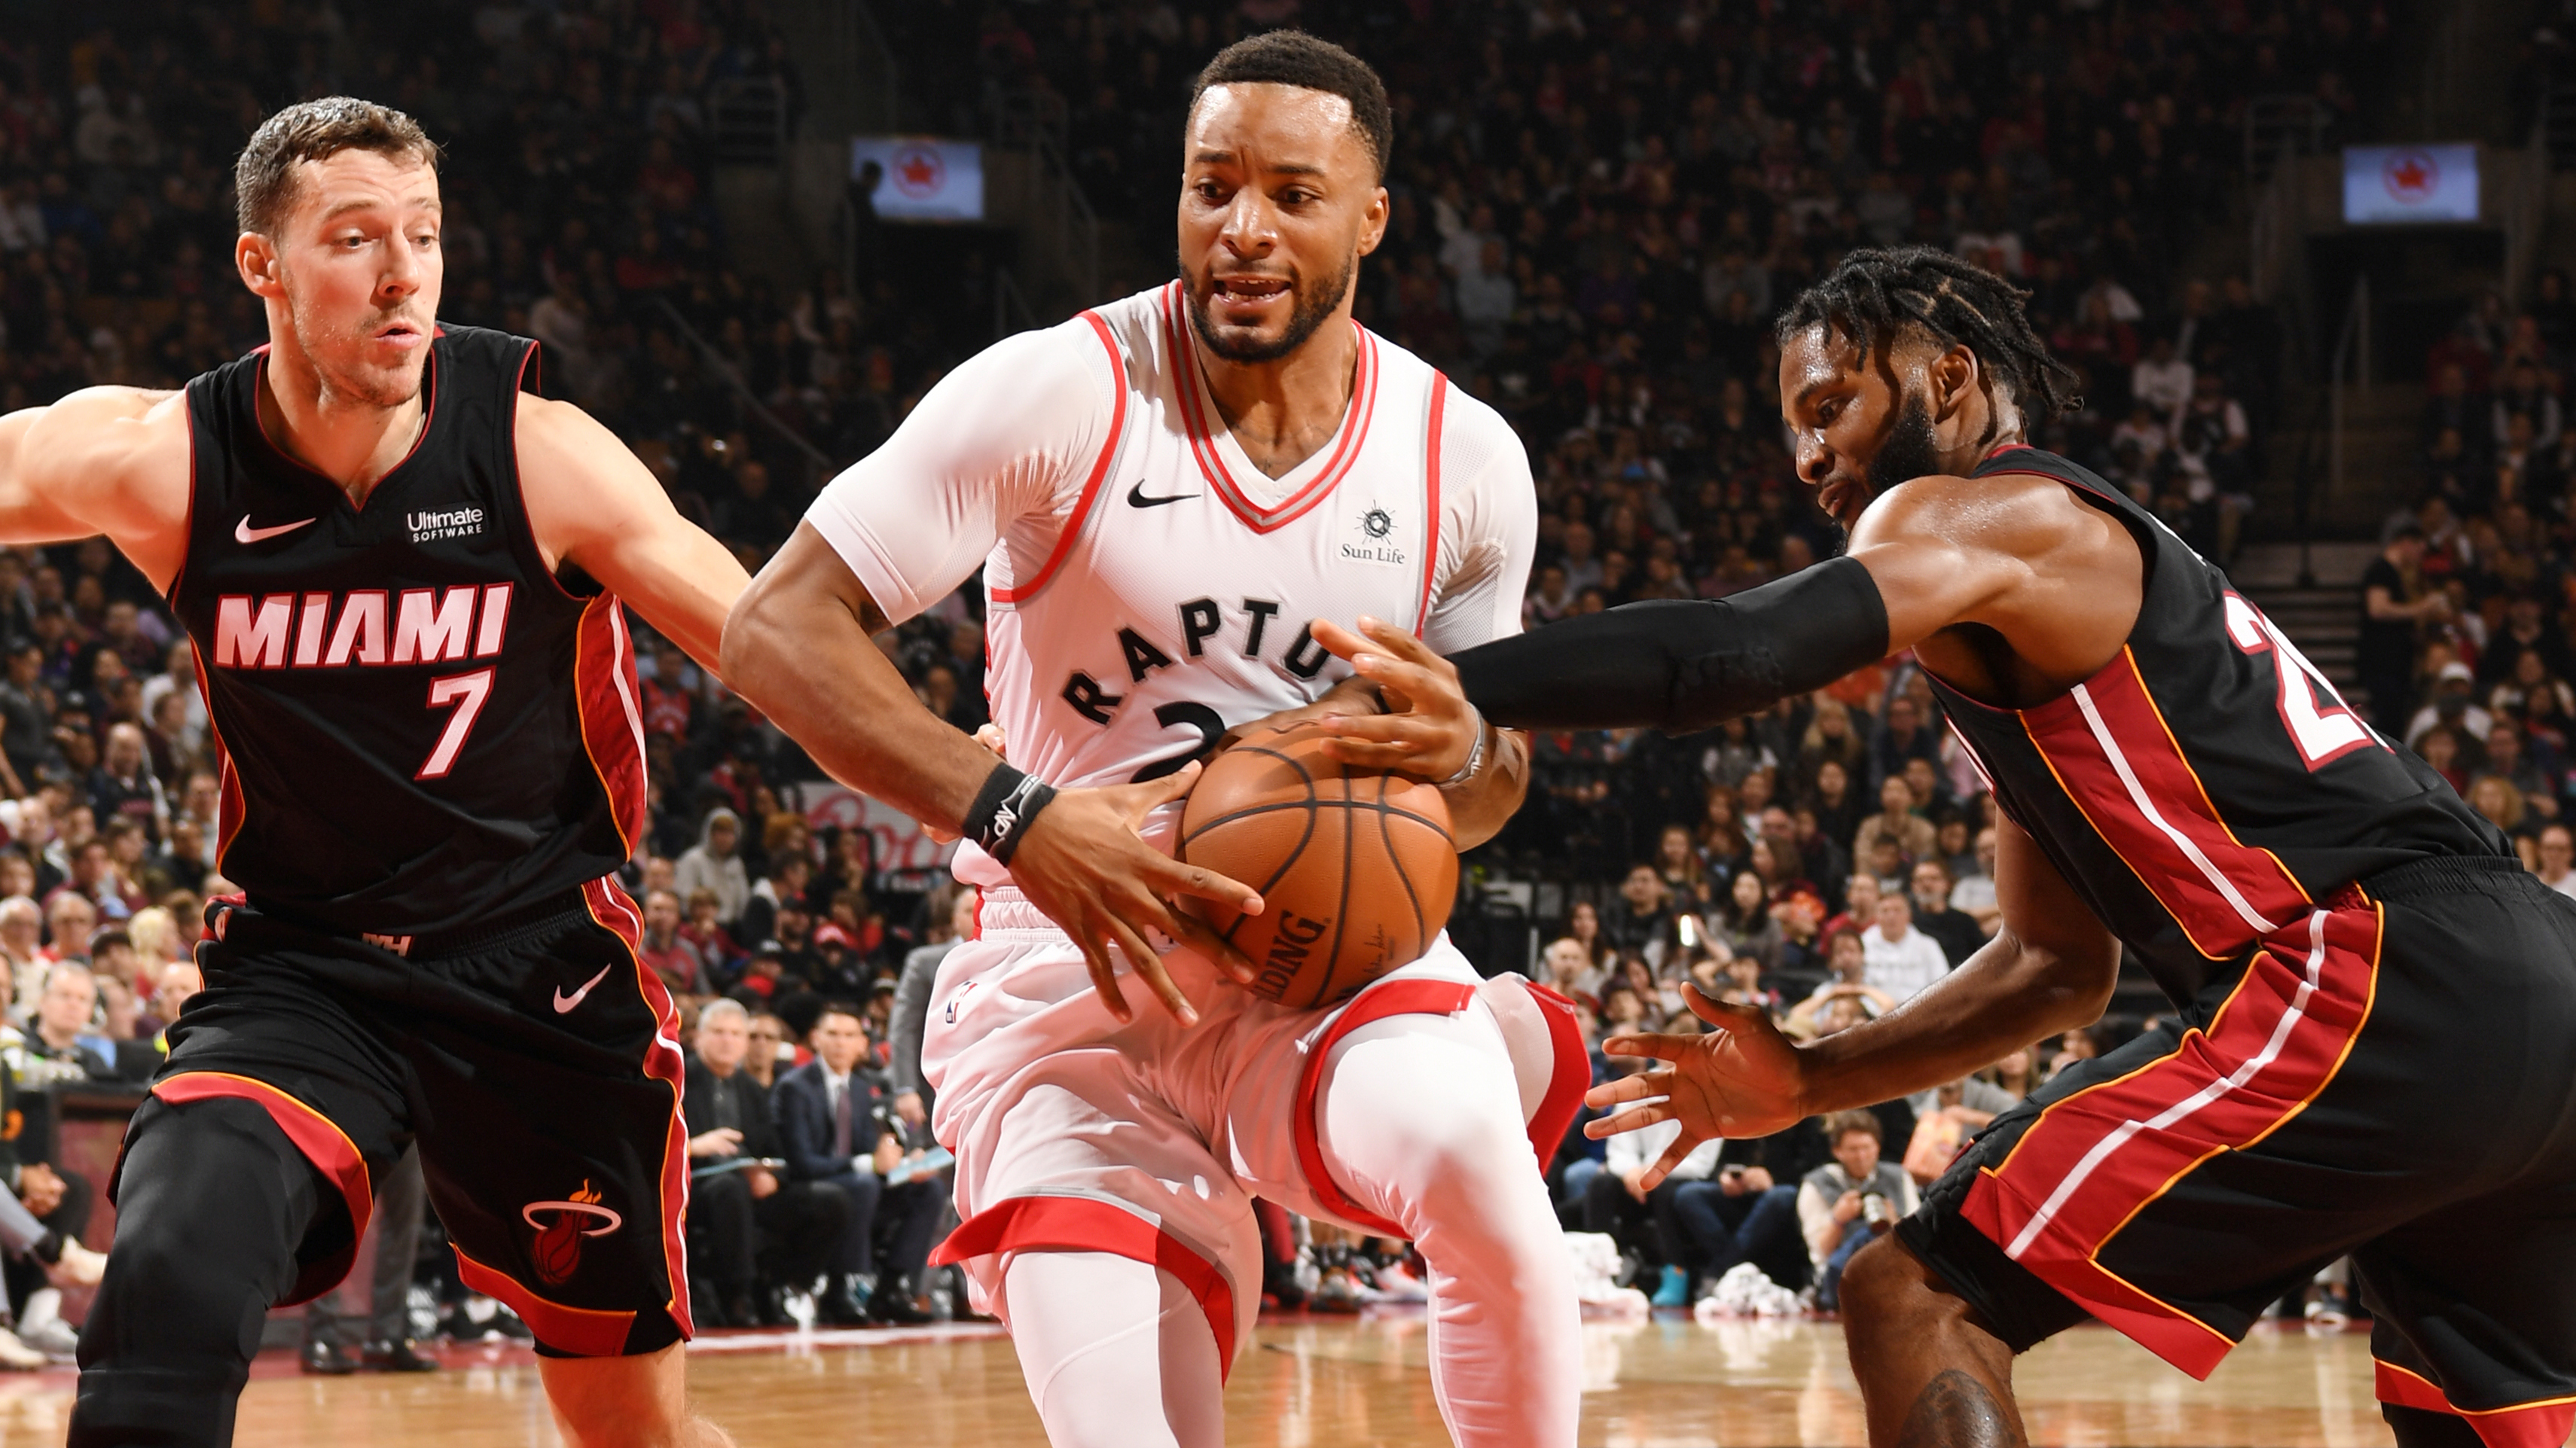 GAME RECAP: Raptors 117, Heat 109